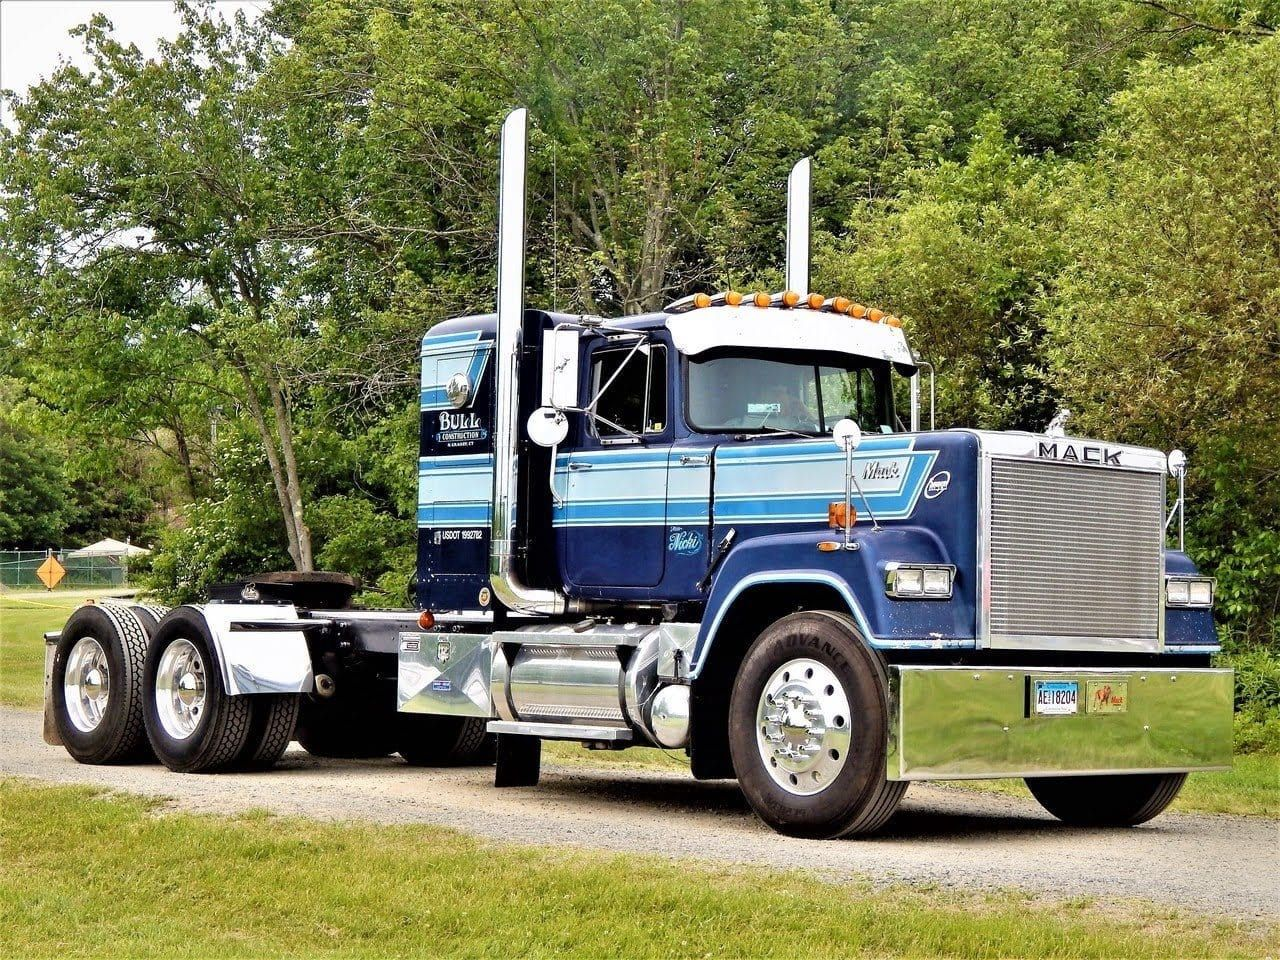 Pin by Jason on Big rig Trucks, Truck bed trailer, Old